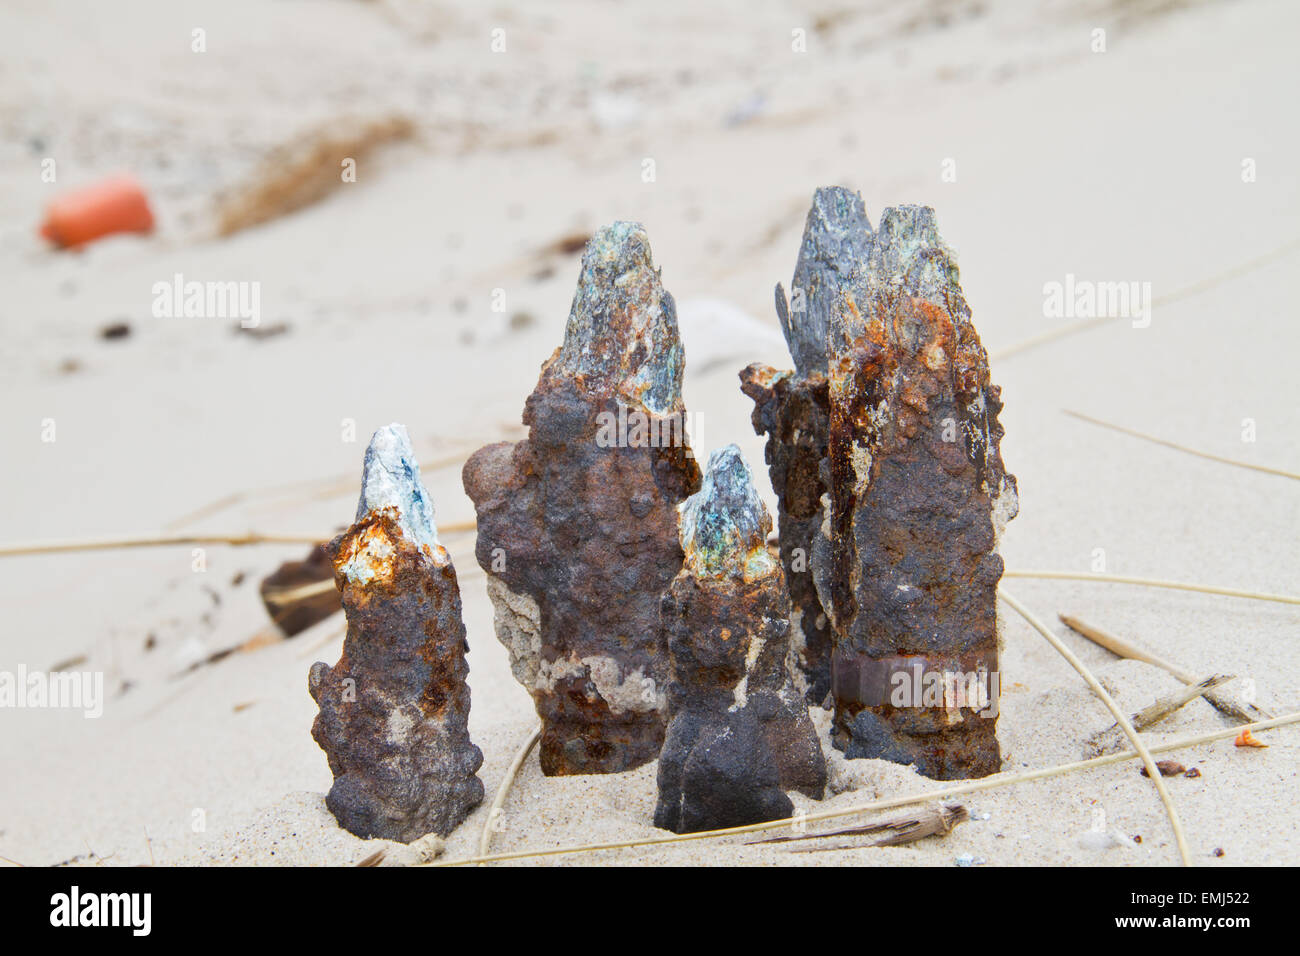 Rusty, oxidized ammunition, remainders of a war, found an a beach. - Stock Image